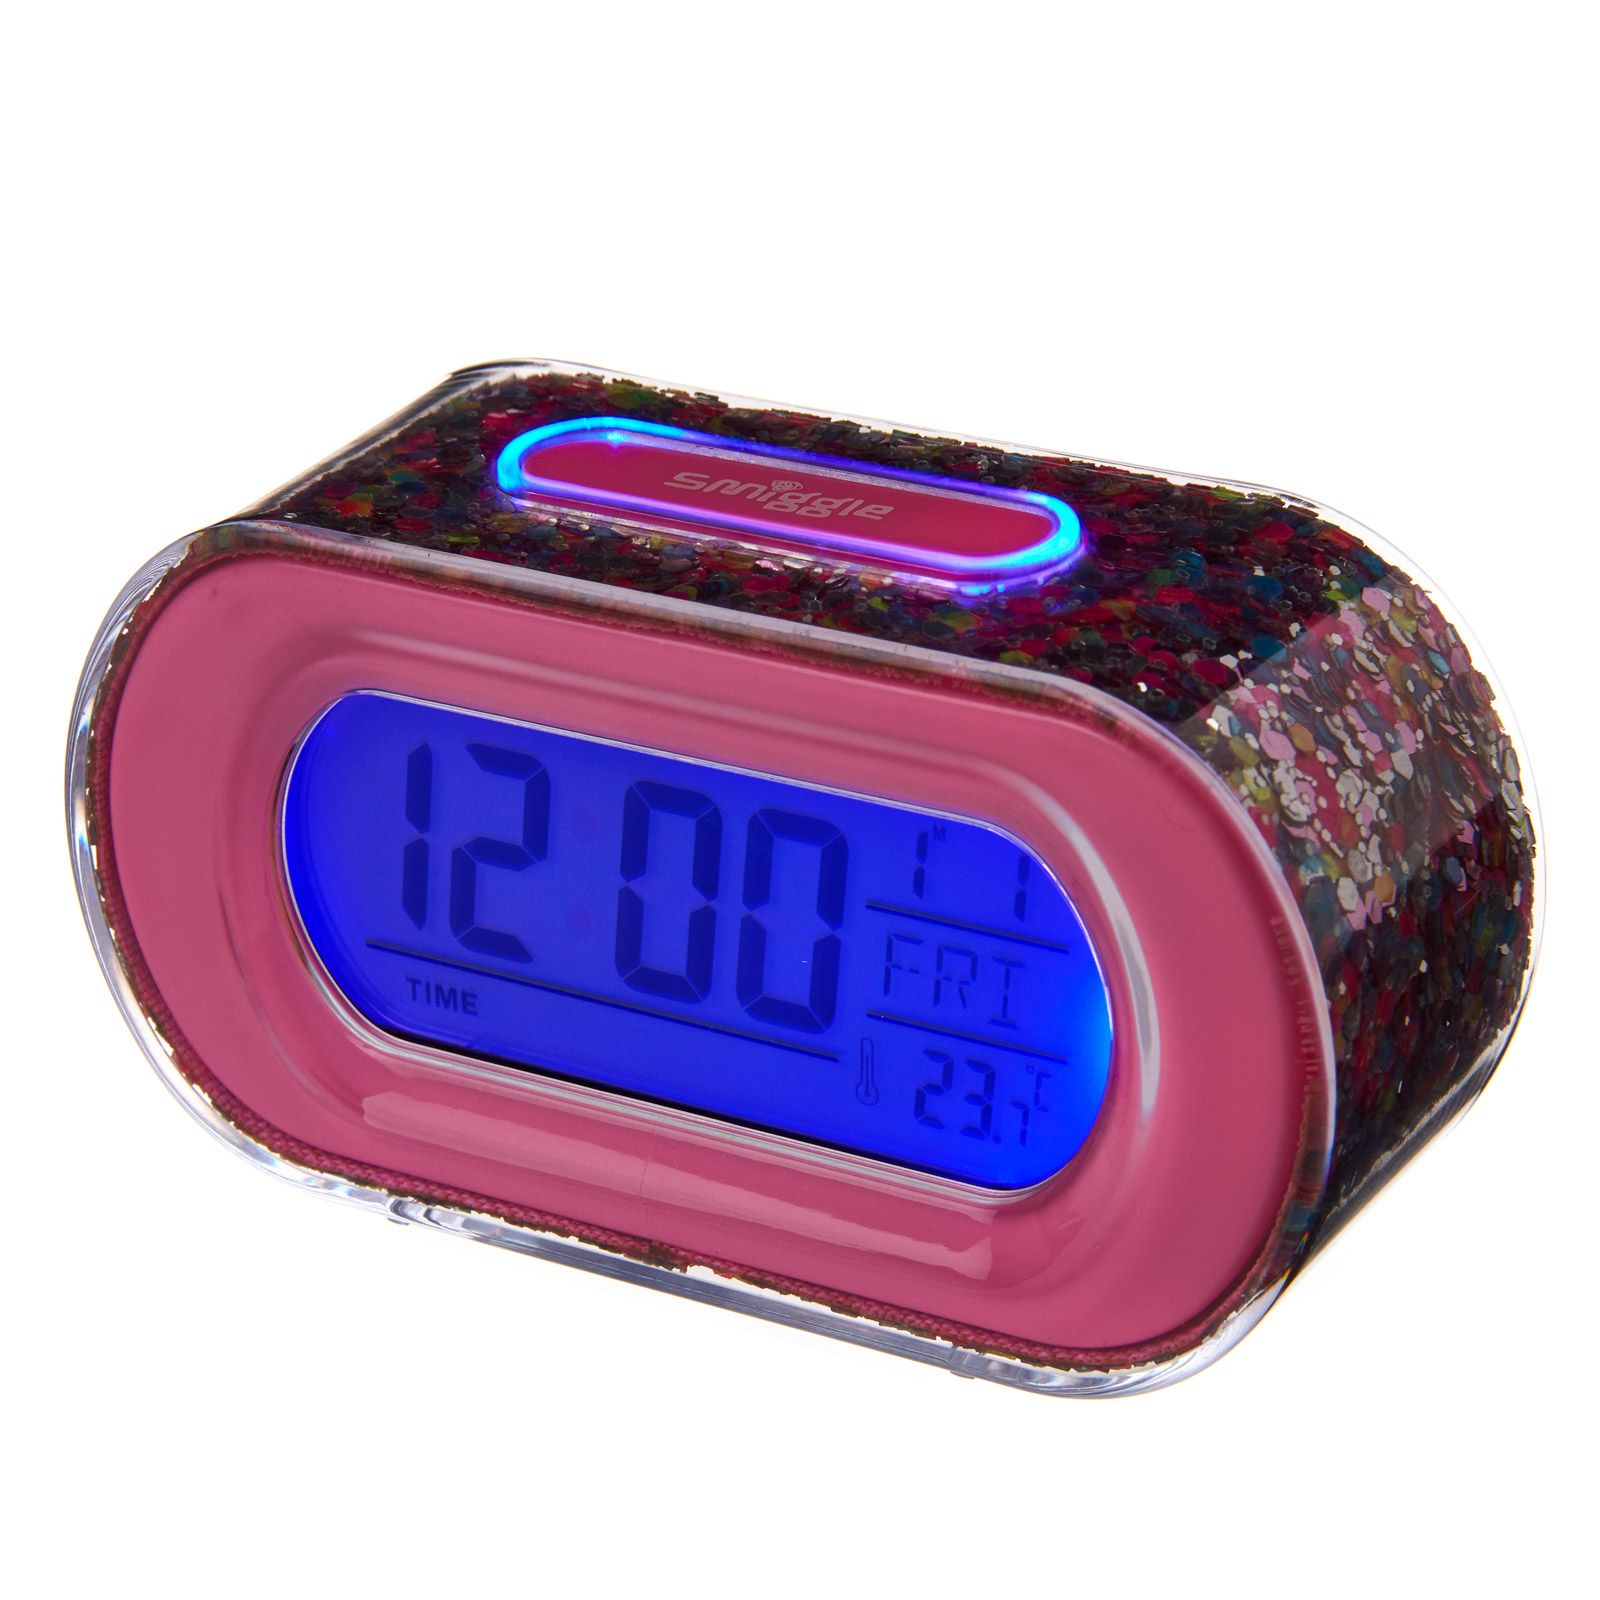 Time To Shine Clock Pink Smiggle